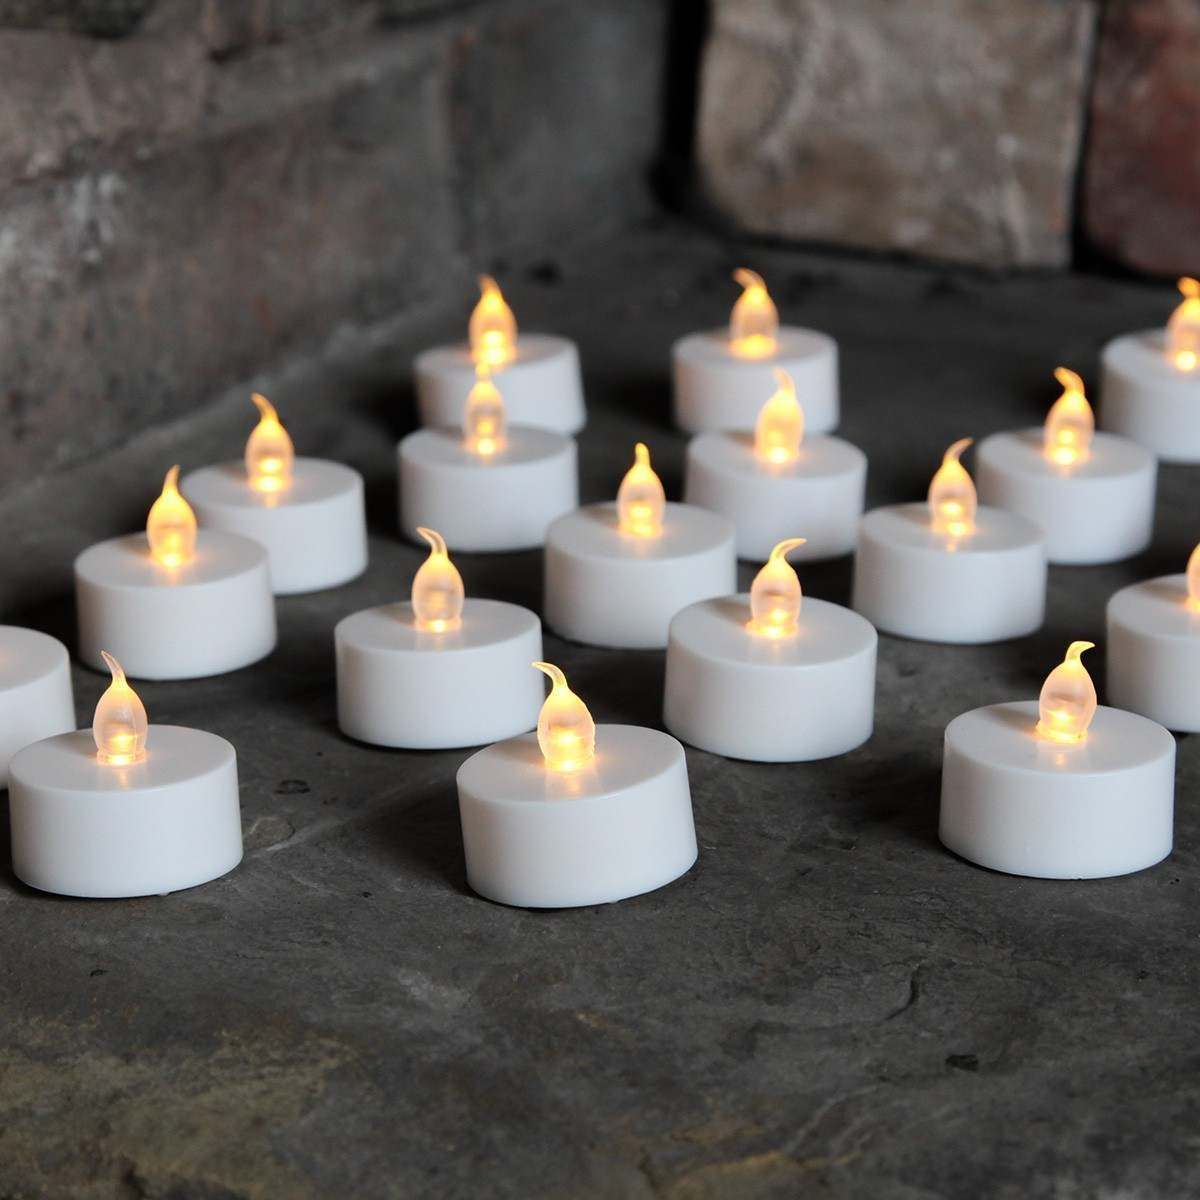 Pack of 10 LED Tealight Candles with 100pcs Cell's in Pakistan